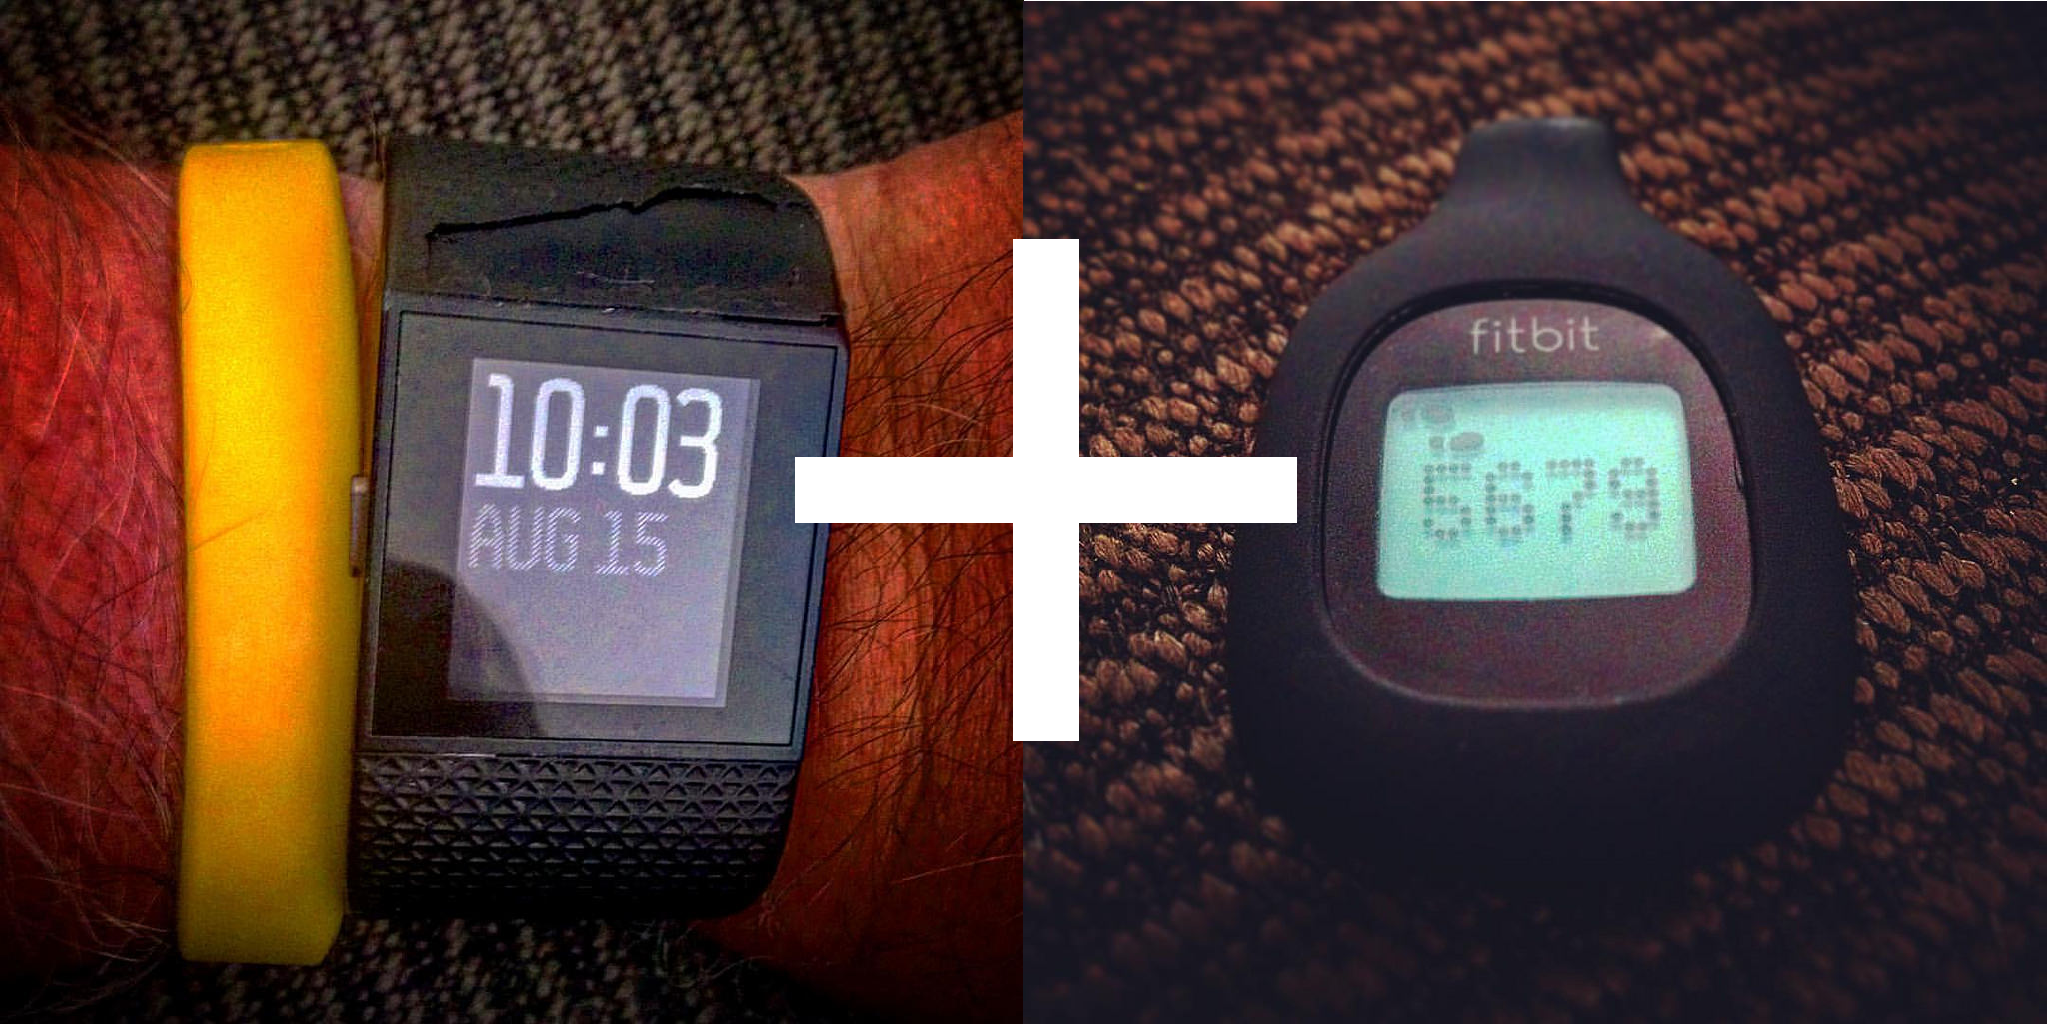 FitBit Surge gypped me on steps so I added a Zip